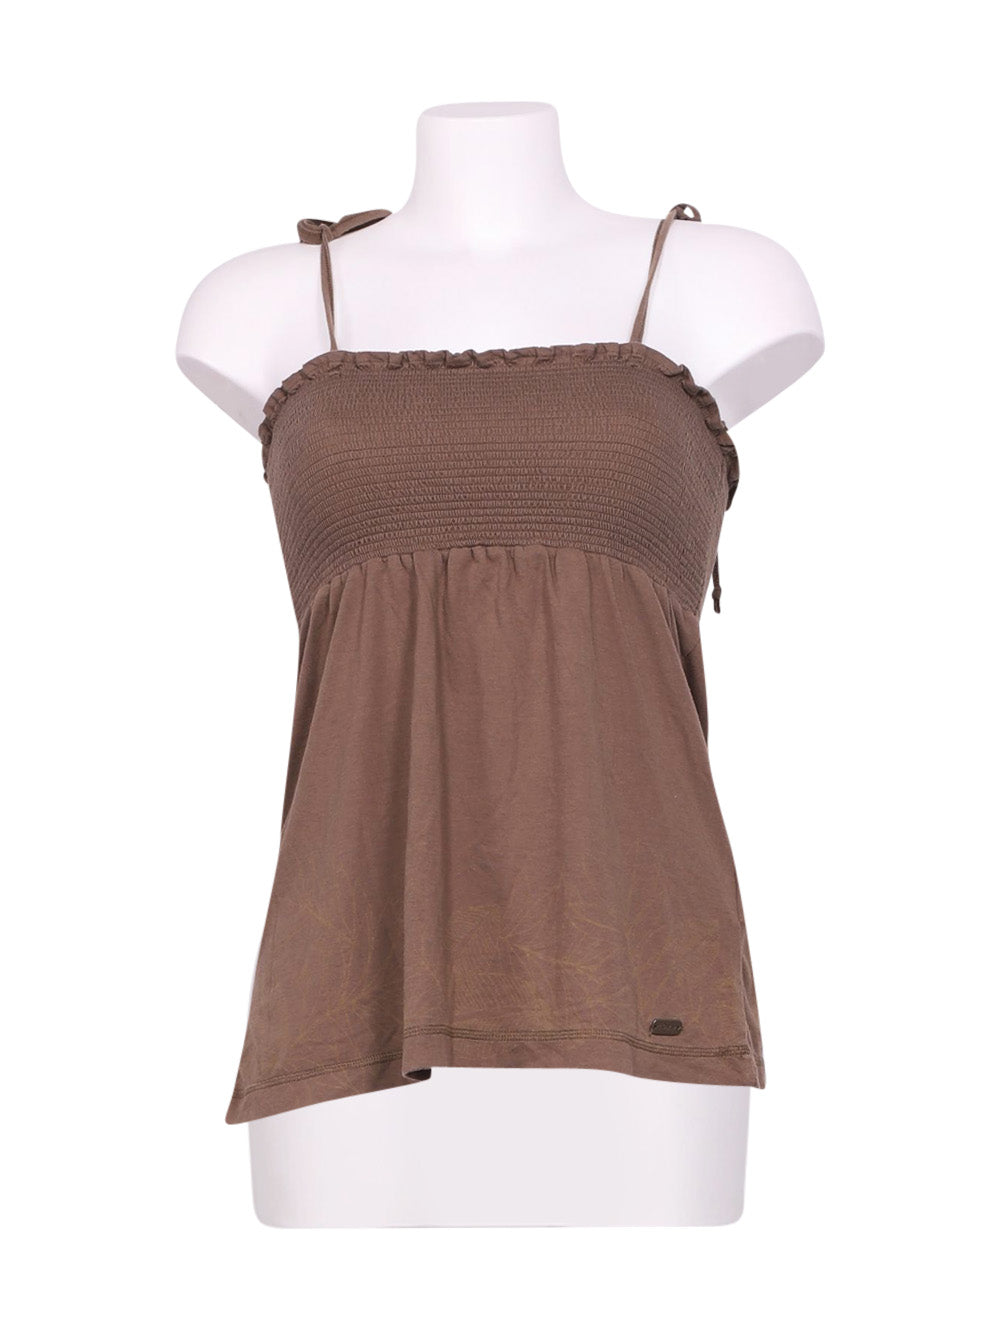 Front photo of Preloved Roxy Brown Woman's sleeveless top - size 12/L